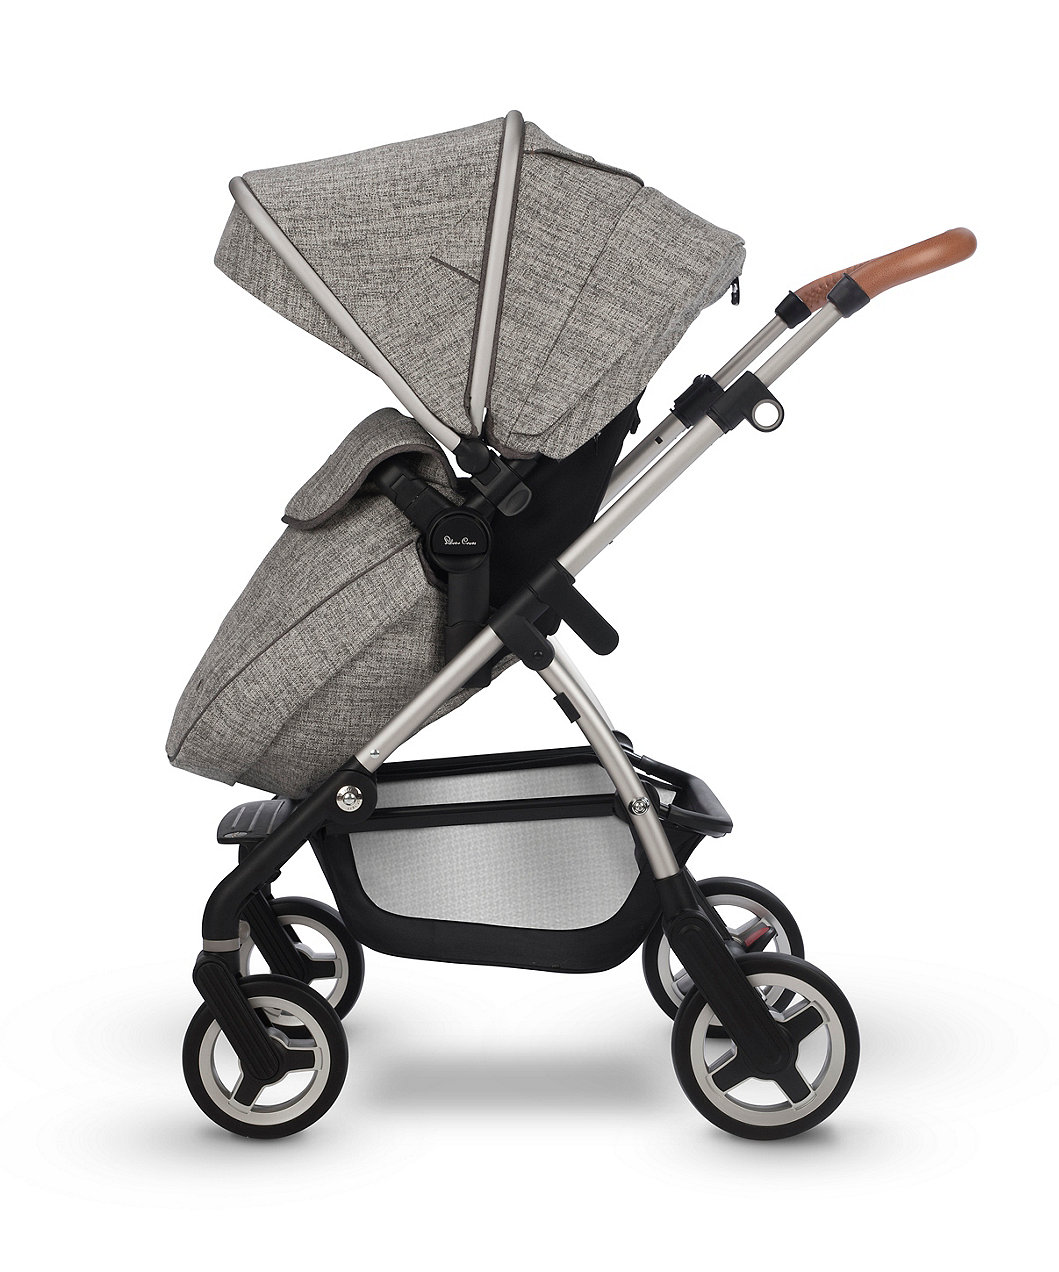 Custom made Seat Liners to fit Silver Cross Wayfarer pushchair